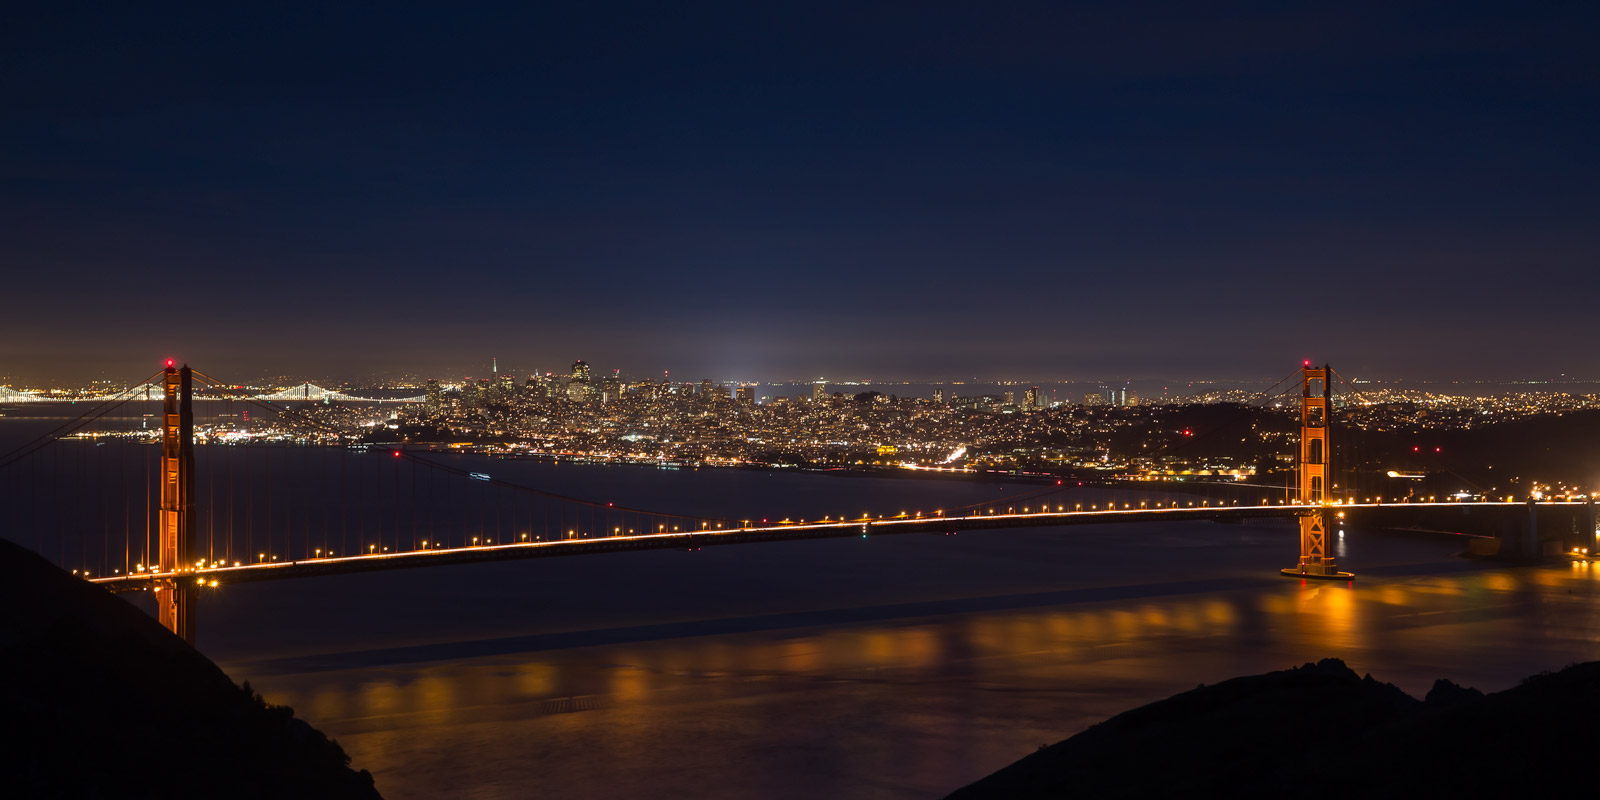 A Limited Edition, Fine Art photograph of the Golden Gate Bridge spanning the bay at night in San Francisco, California.  Available...